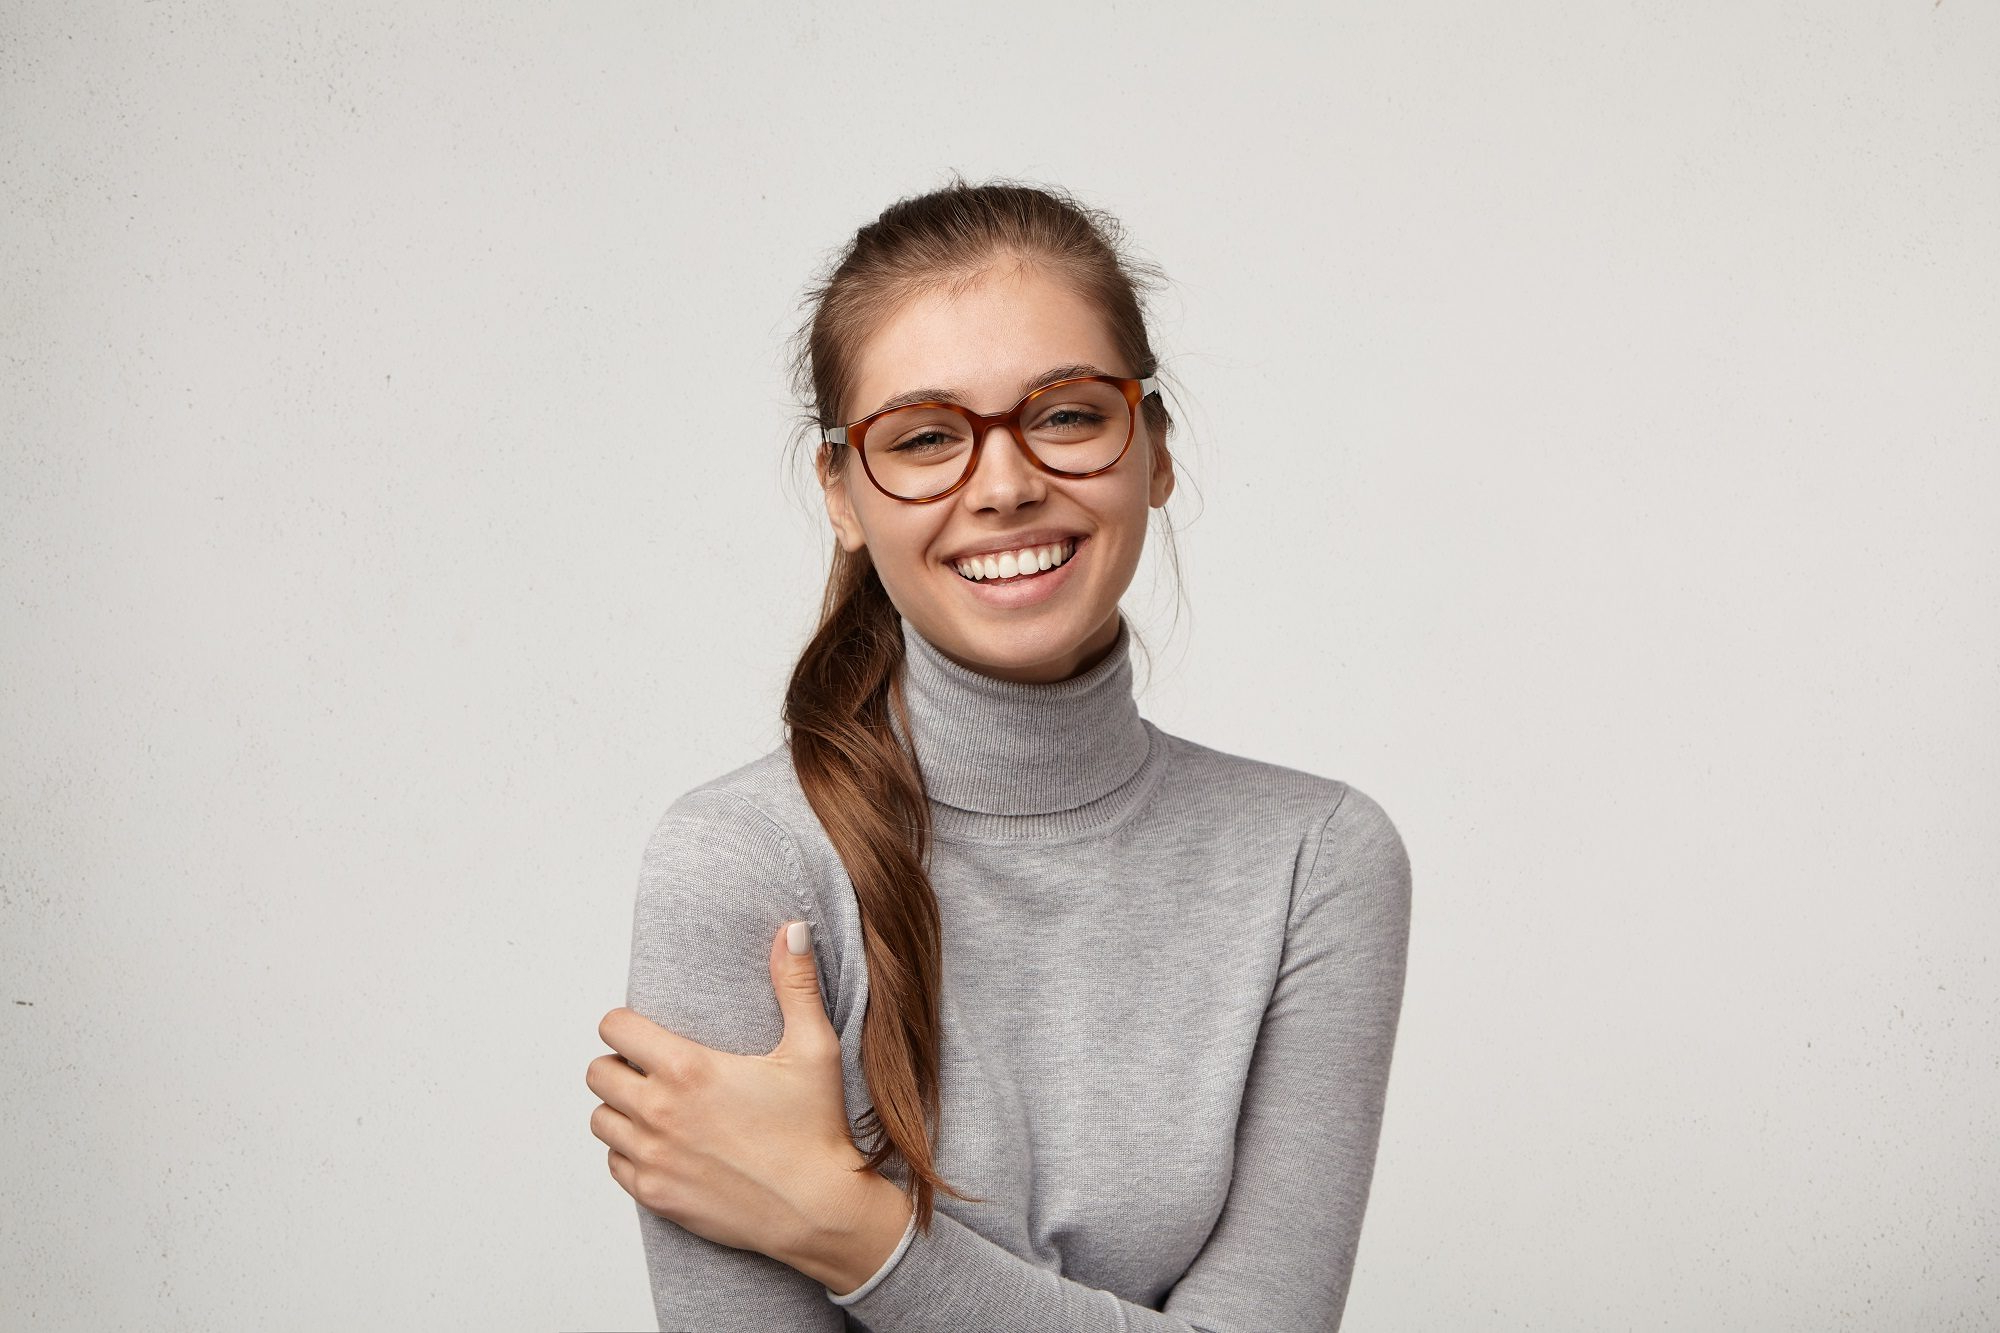 Bespectacled Beauty: 5 Best Hairstyles For Glasses Wearers | All In Short Hairstyles For Glasses Wearers (View 15 of 25)